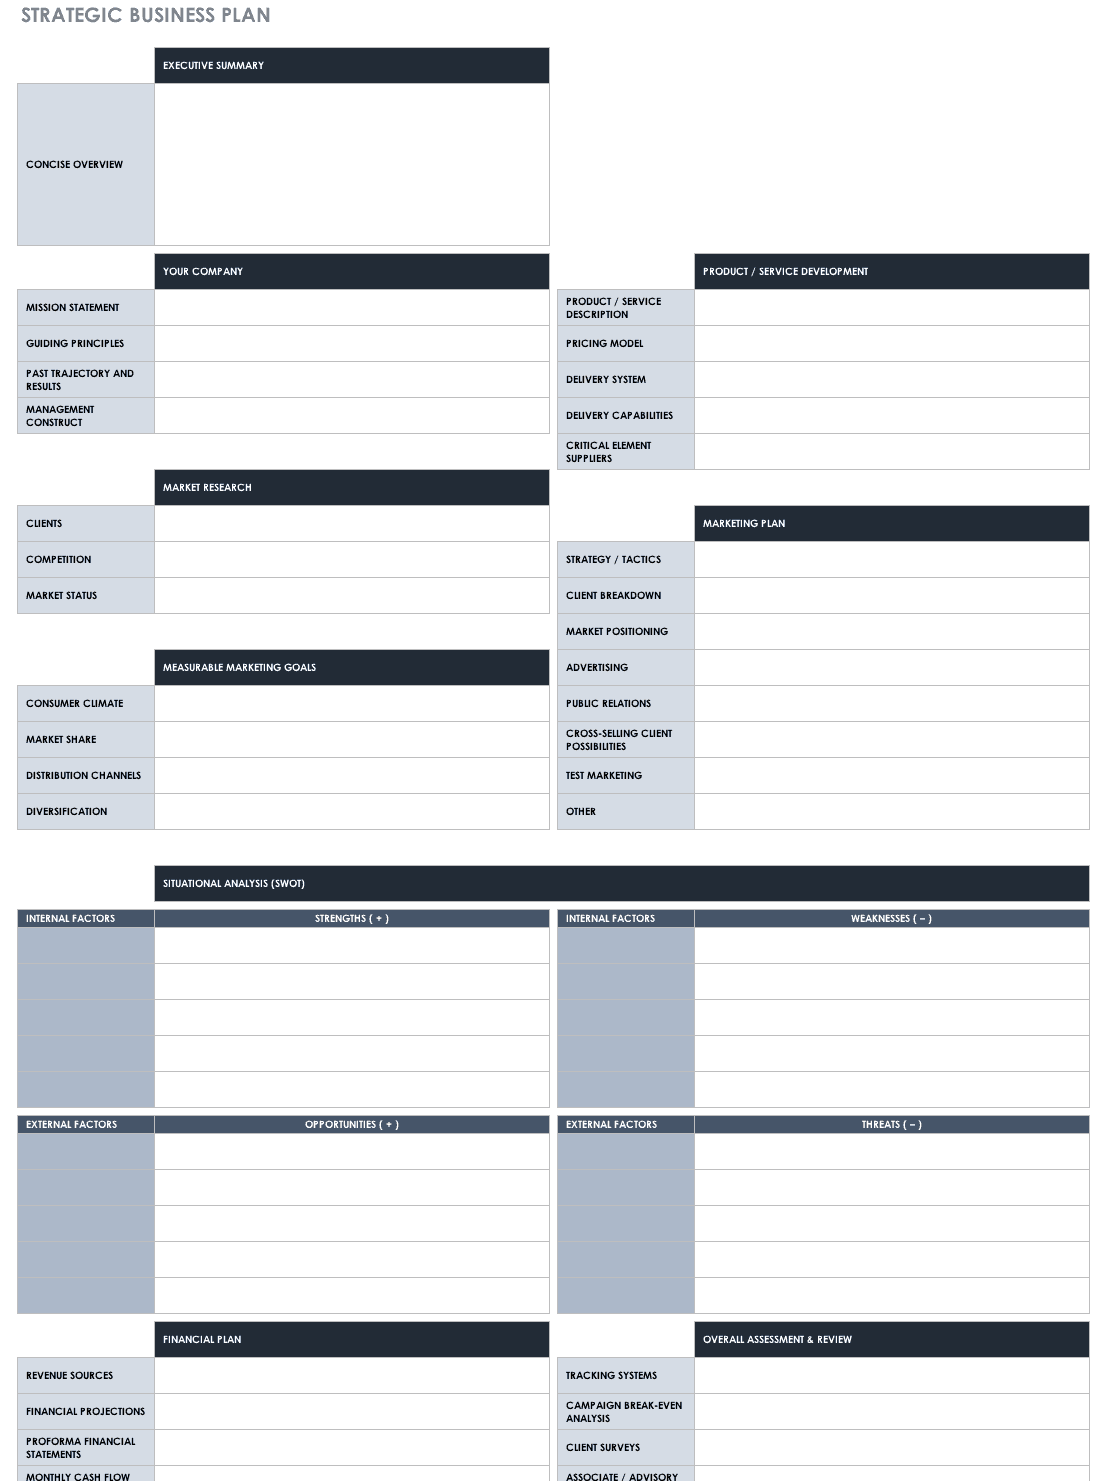 Free strategic planning templates smartsheet strategic business plan template malvernweather